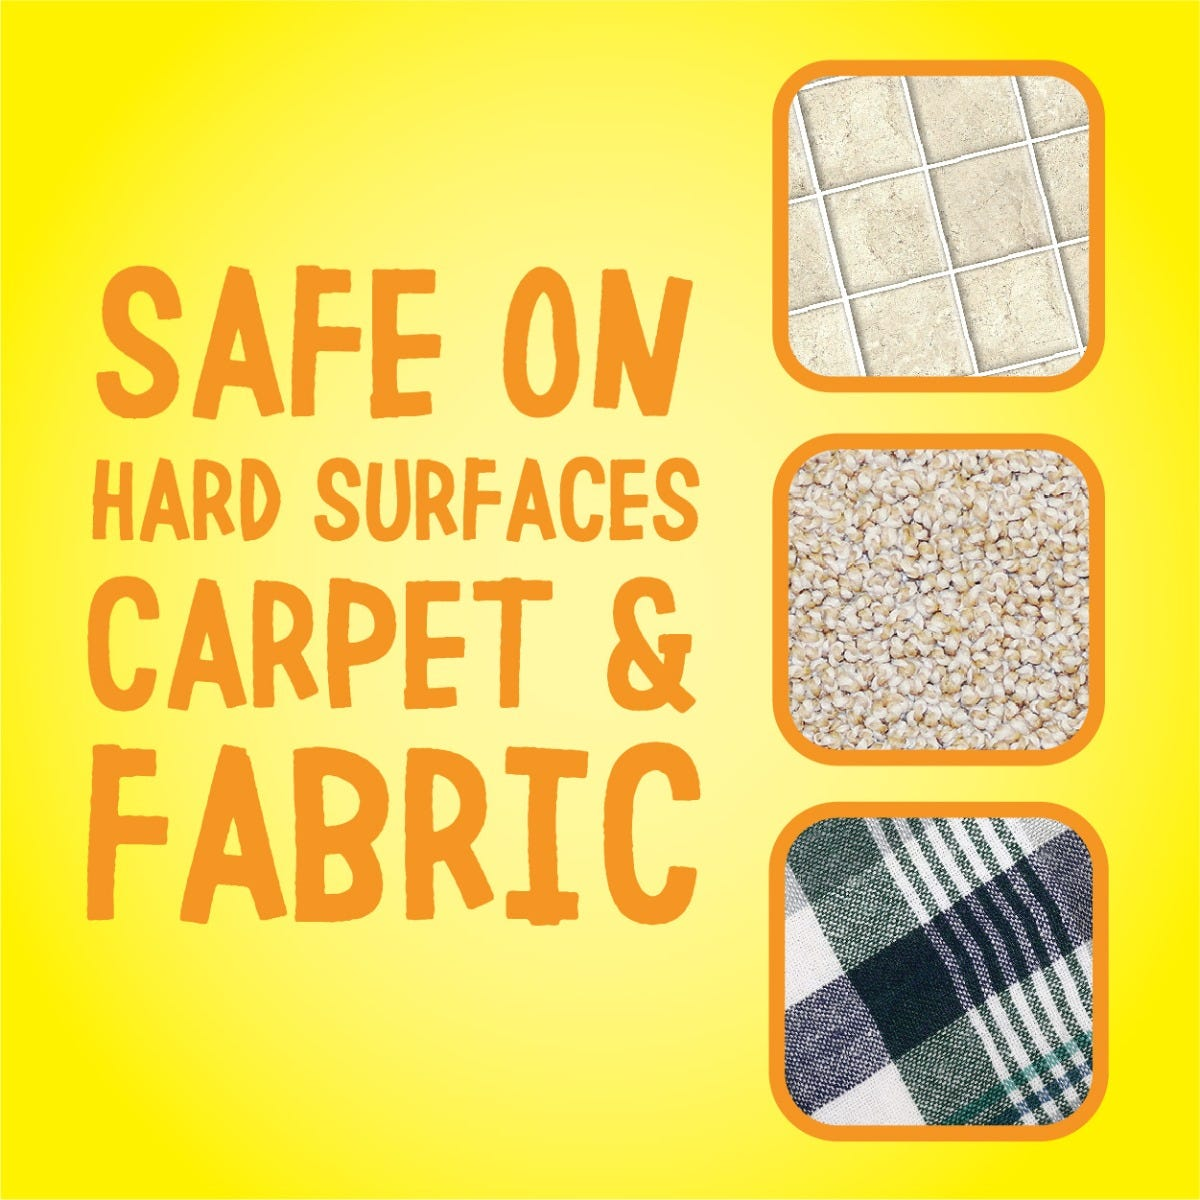 Safe on carpet, fabric and hard surfaces